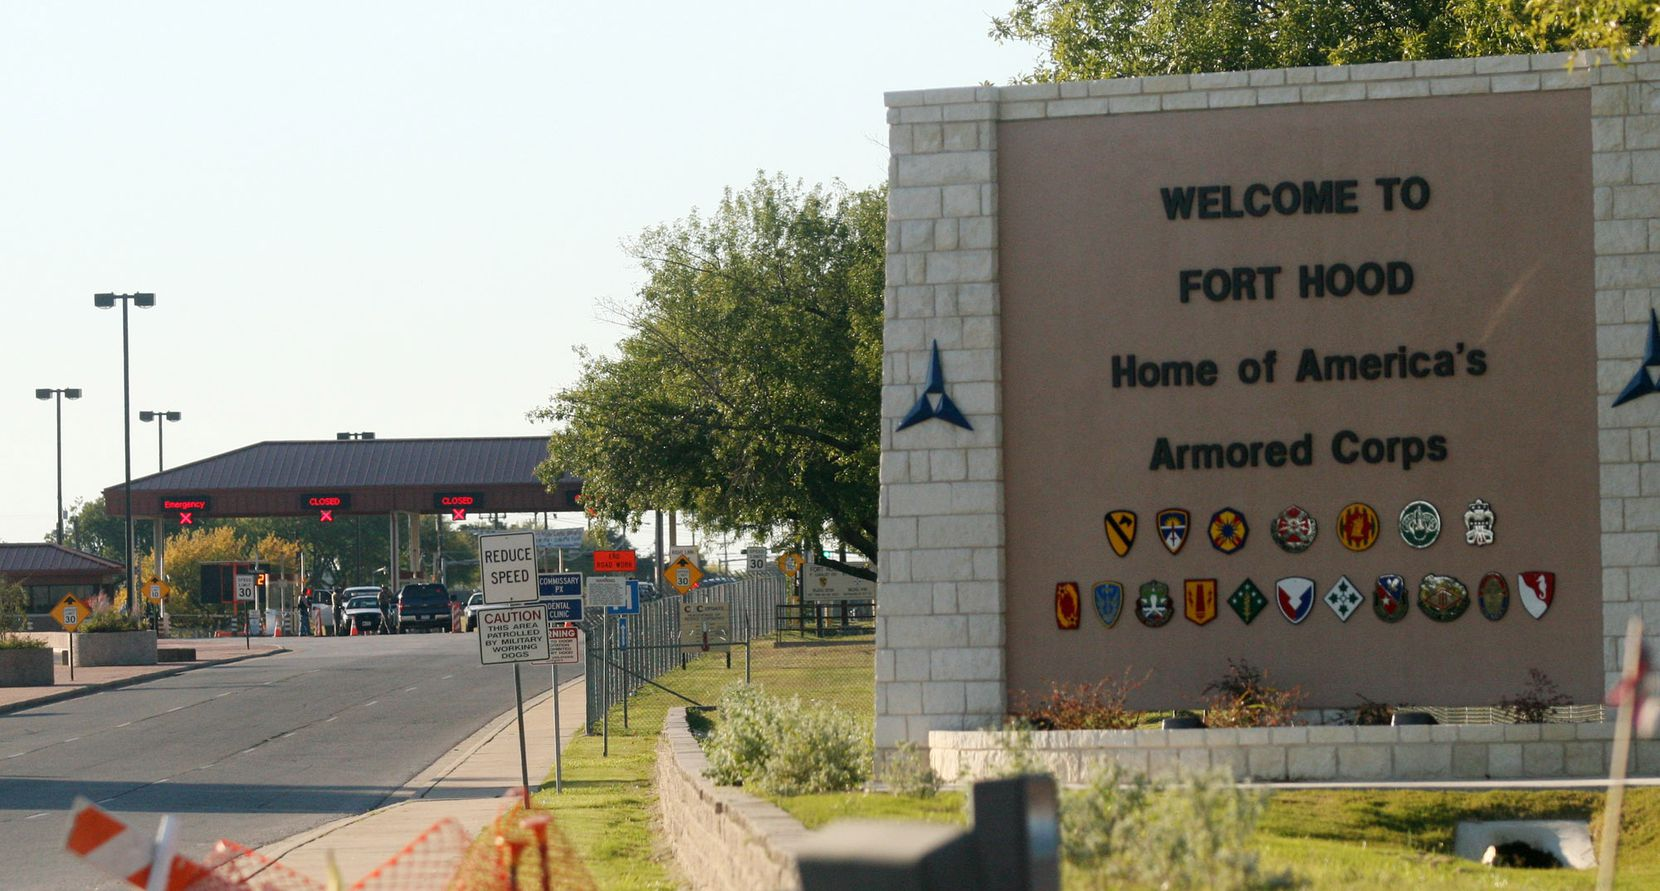 Fort Hood soldiers were recruited and paid to request prescriptions for unneeded compound pain creams from Trilogy Pharmacy in Dallas, federal prosecutors allege.